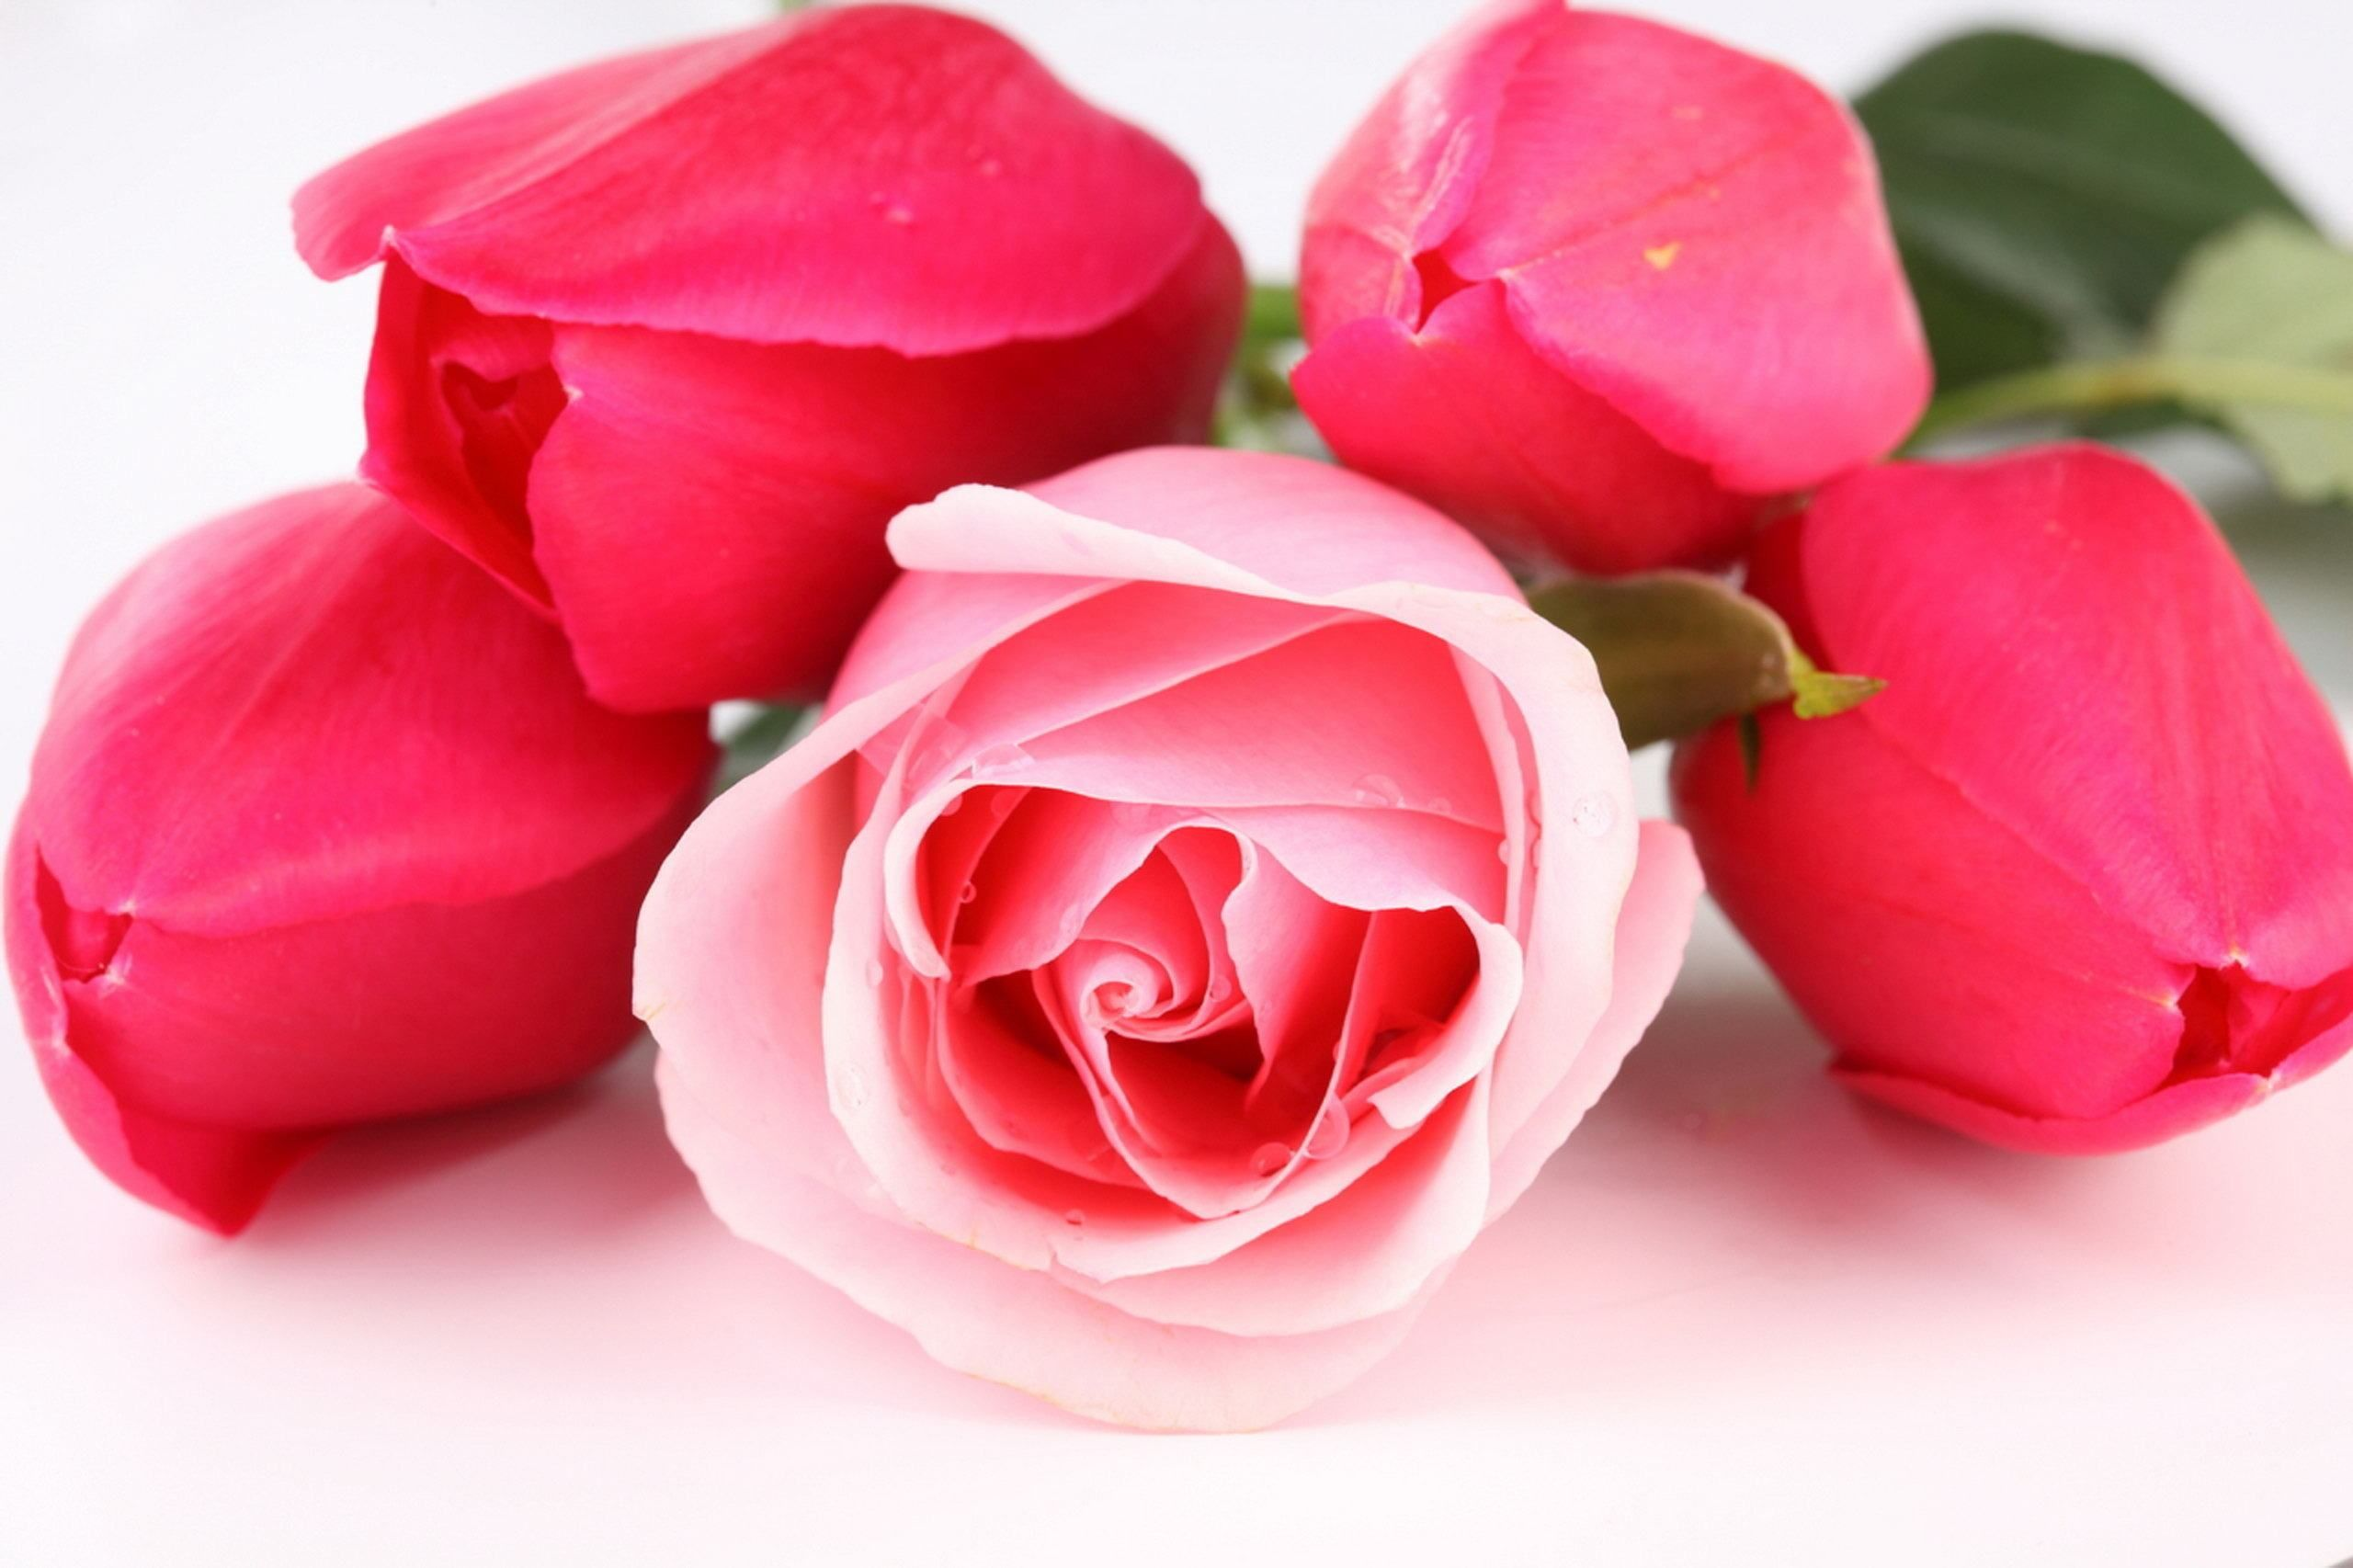 rose flowers wallpapers for desktop hd images 3 hd wallpapers